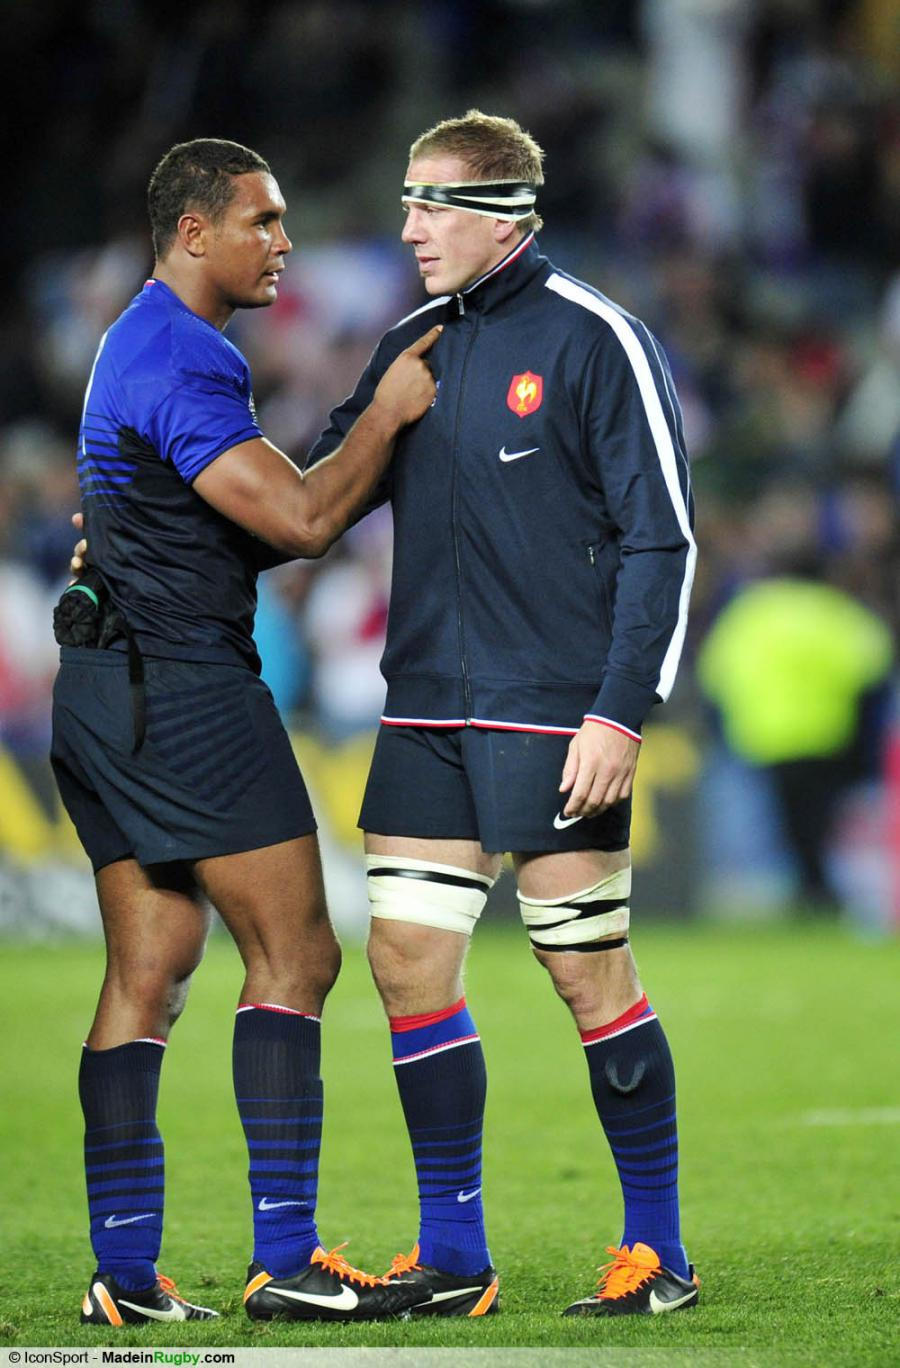 Photos foot joie france thierry dusautoir imanol harinordoquy angleterre - Finale coupe du monde rugby 2011 ...